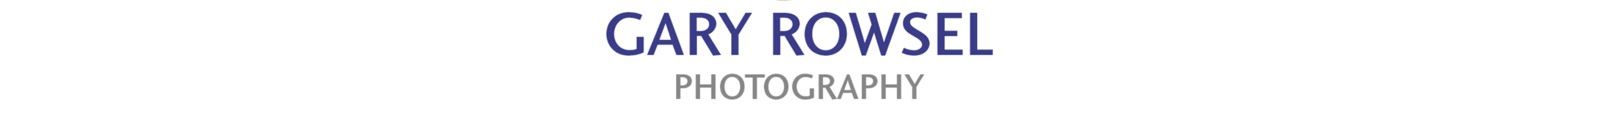 Gary Rowsel Photography